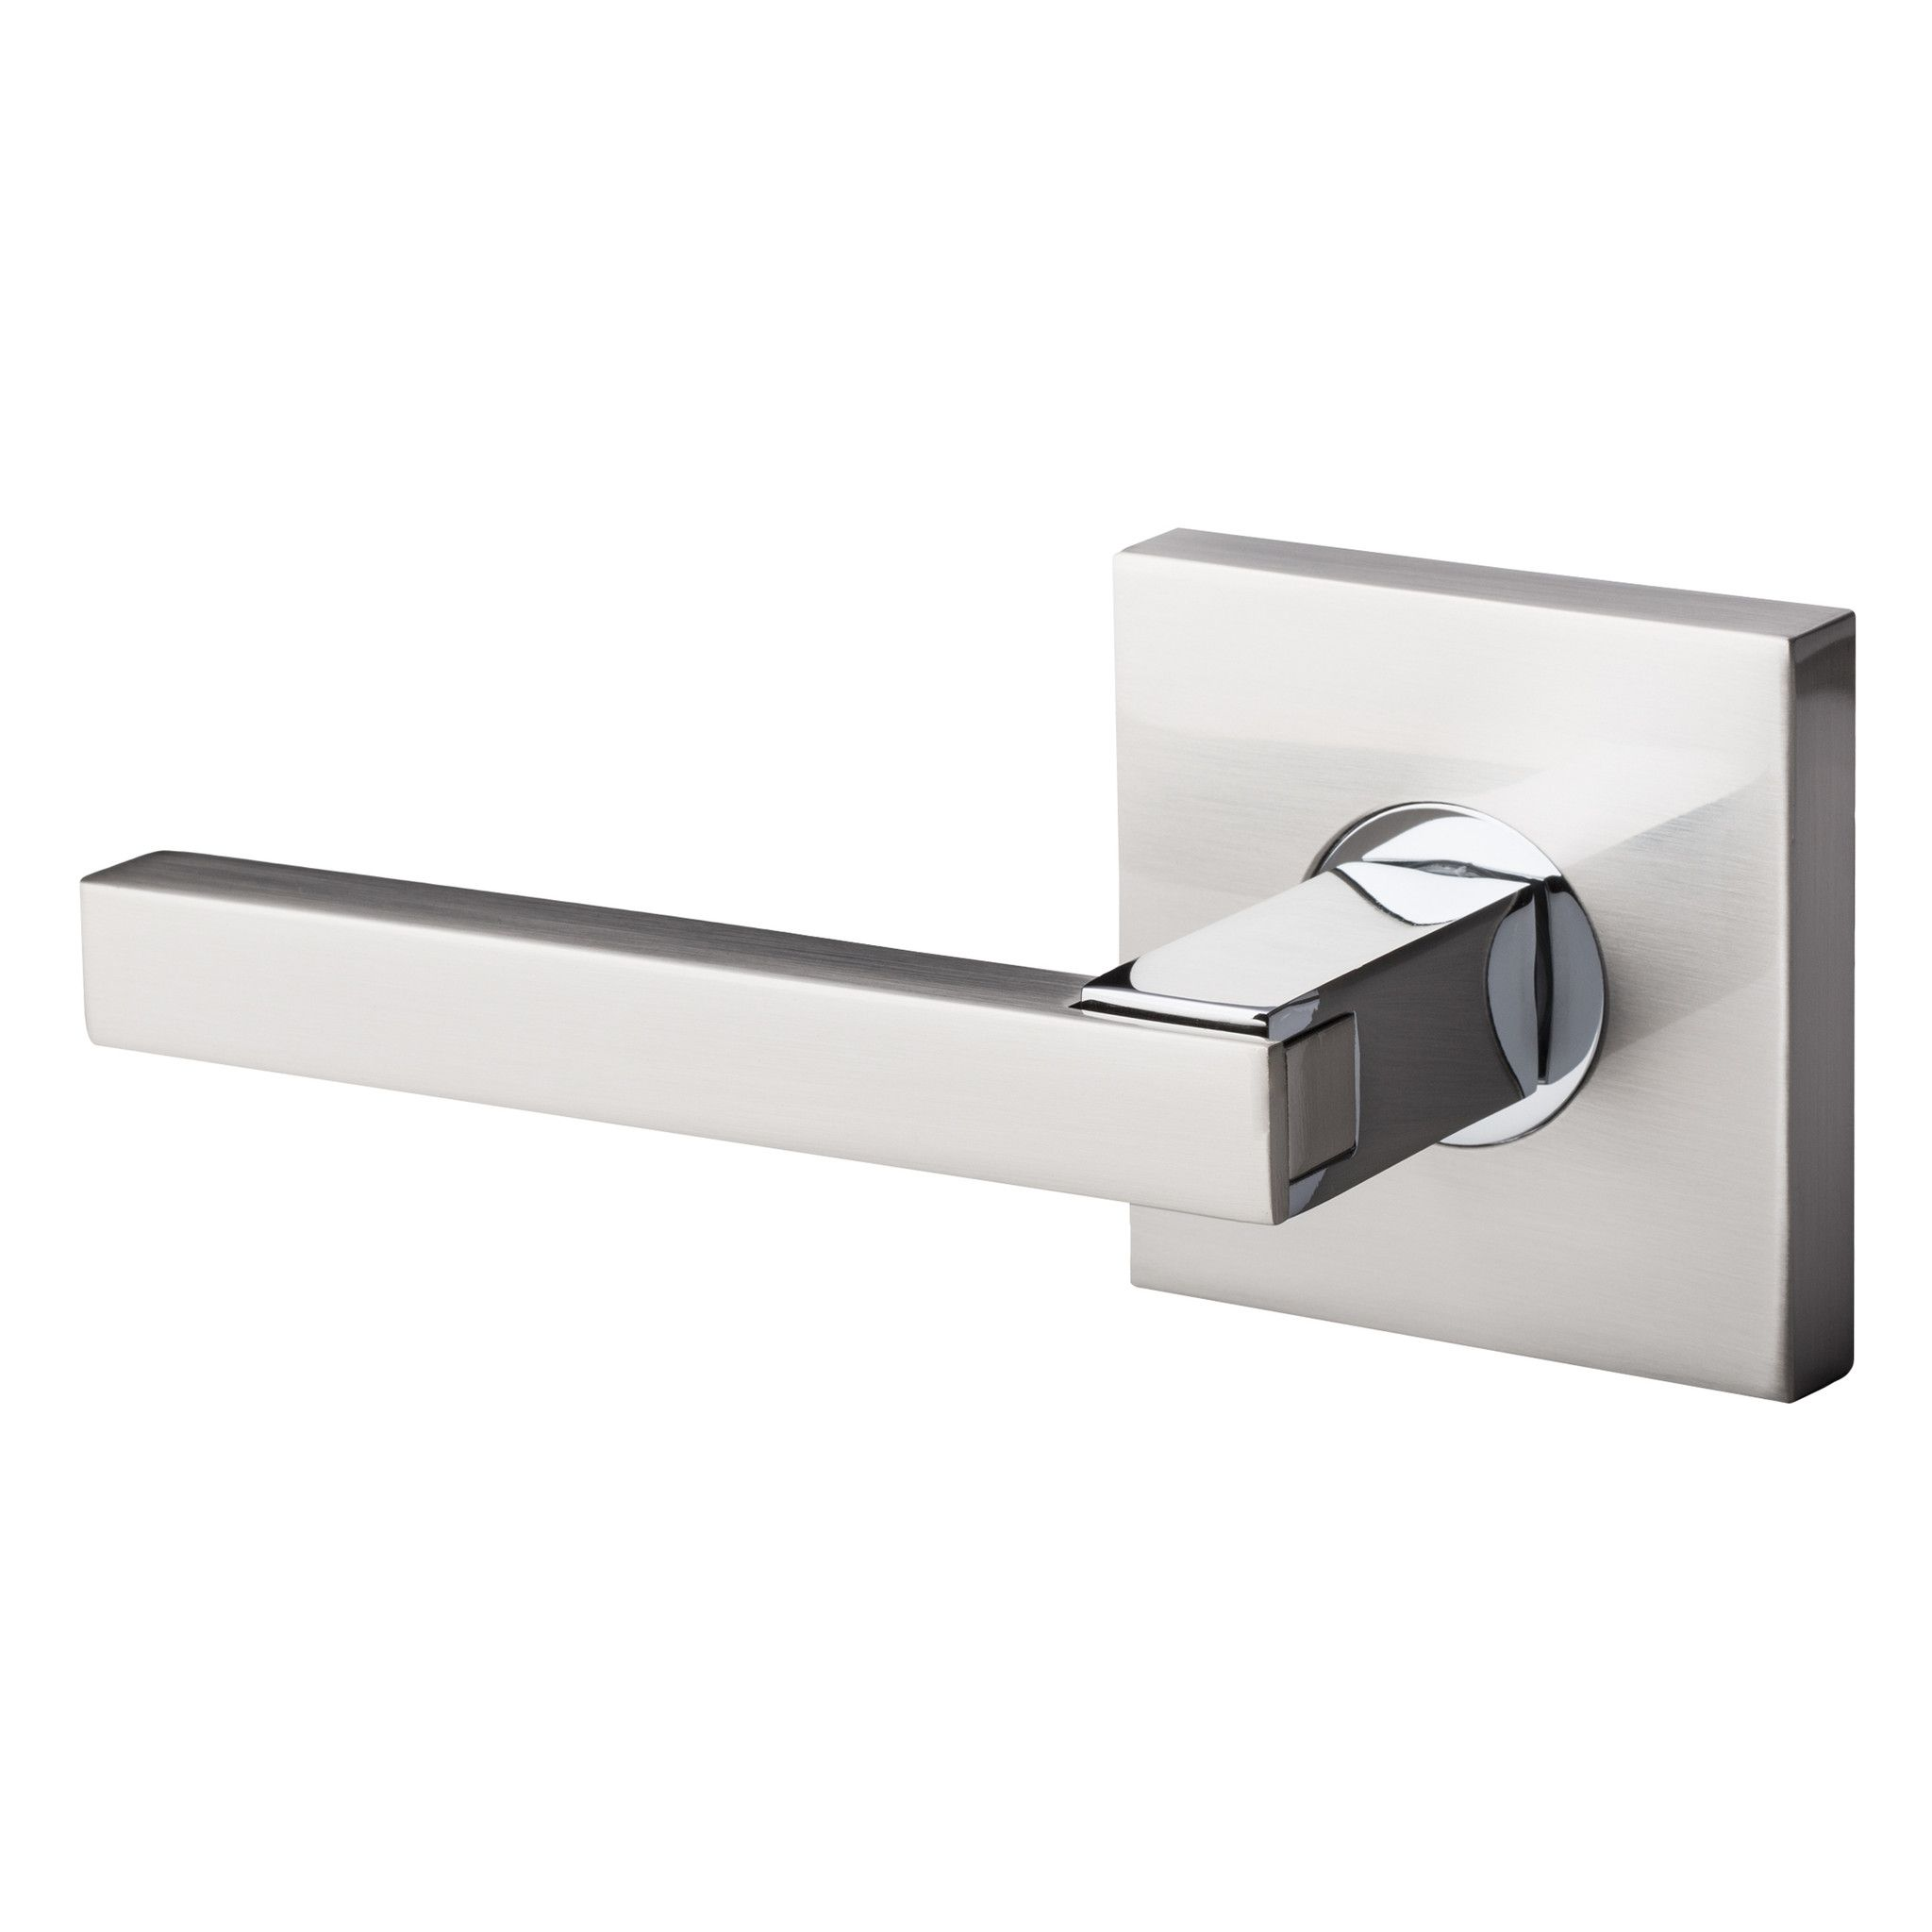 Bai 3016 Inactive Modern Dummy Door Handle Lever Set